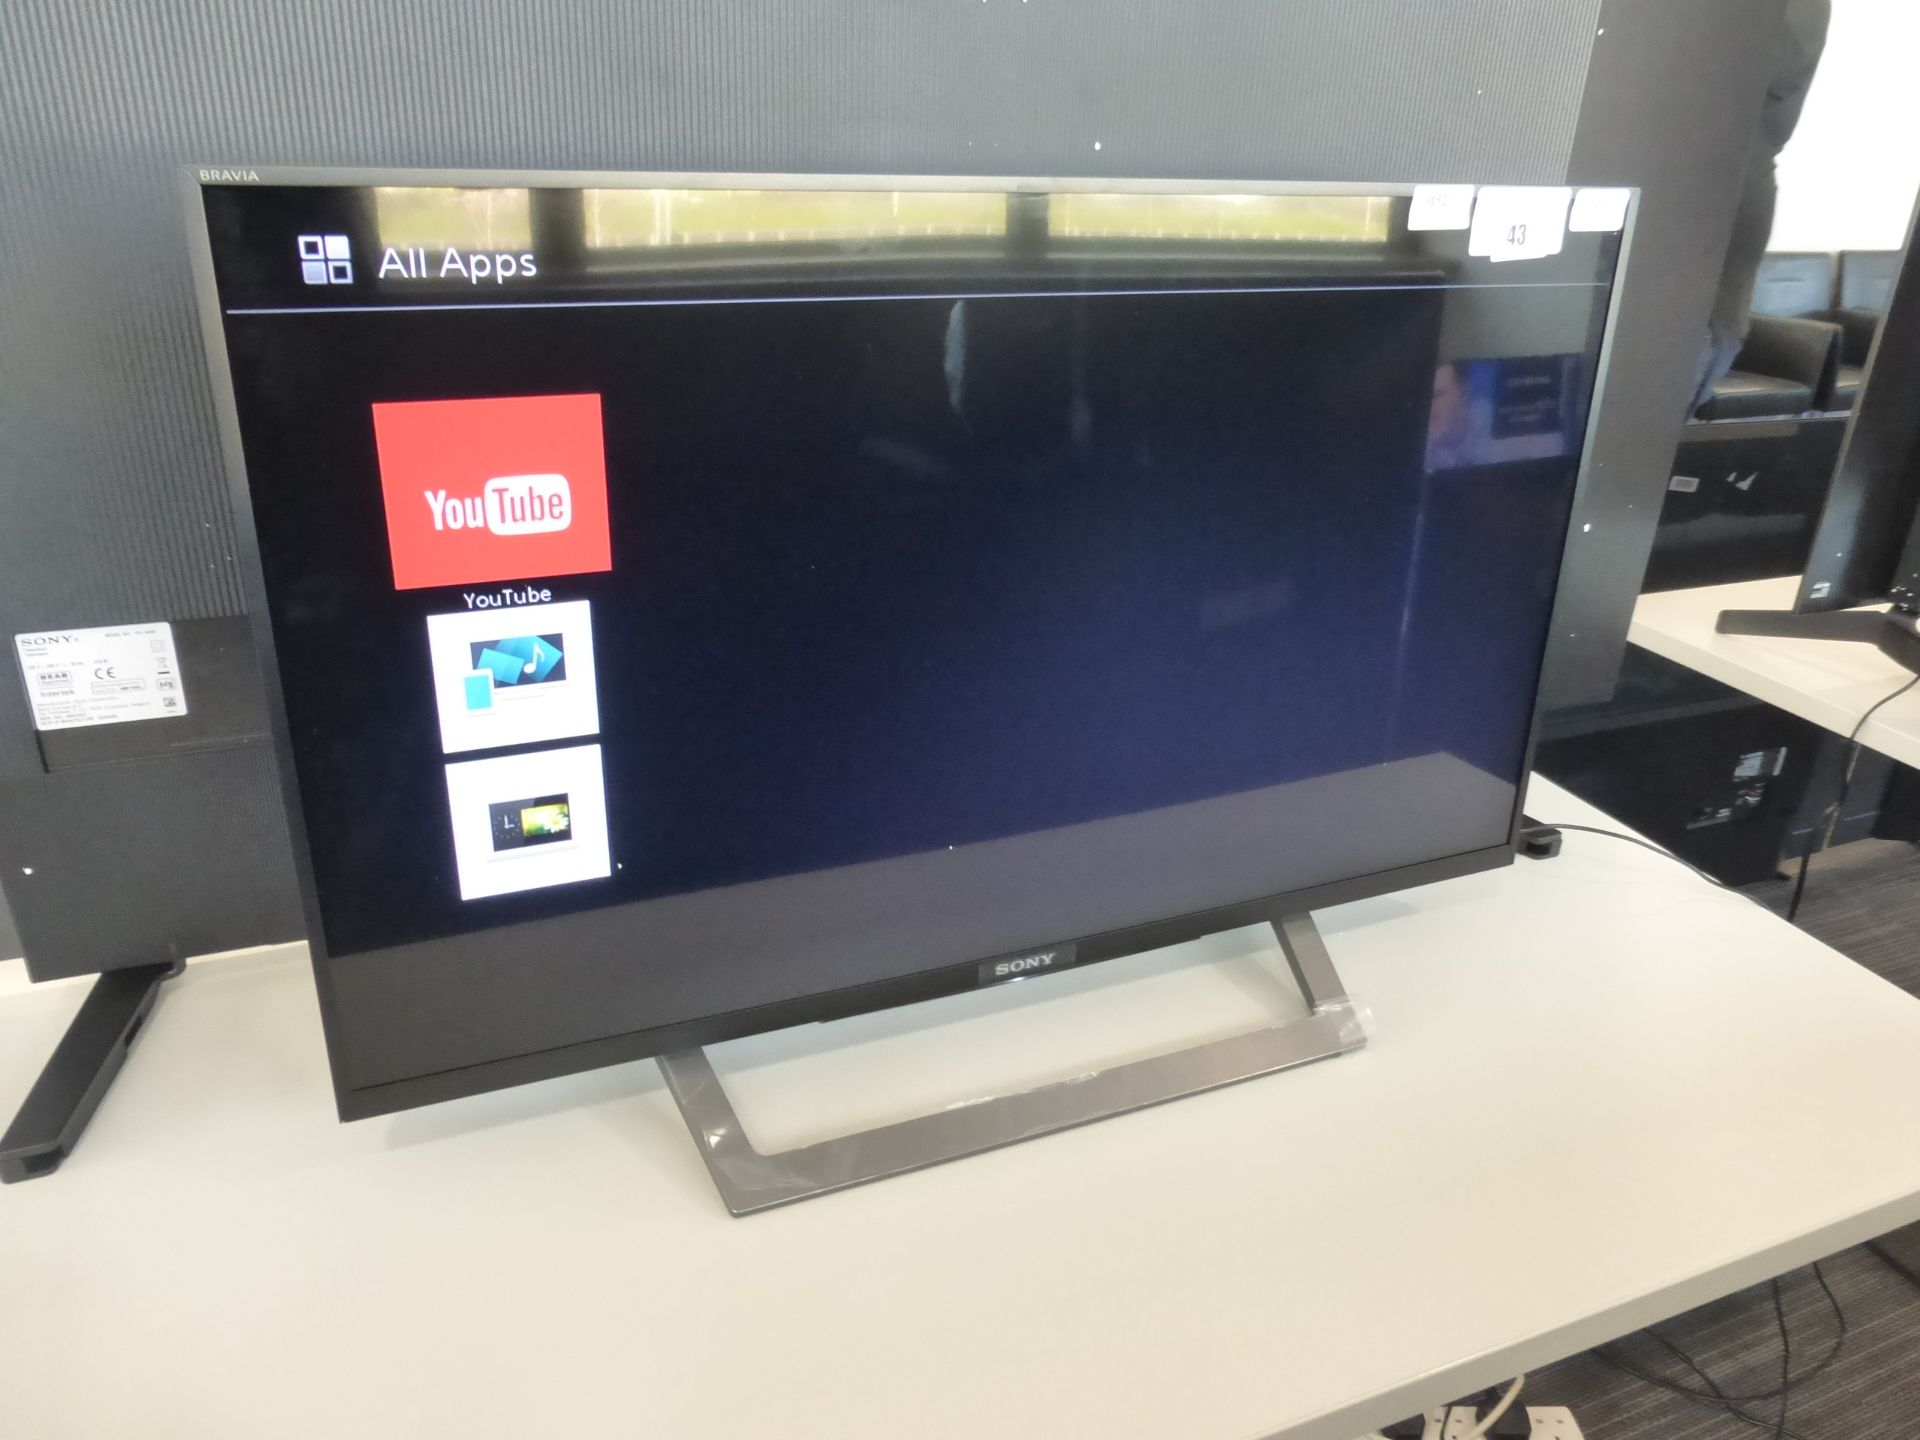 Sony 32'' TV Model: KDL-32WD754, includes remote (R30) and box (B52) Screen has no visible damage,